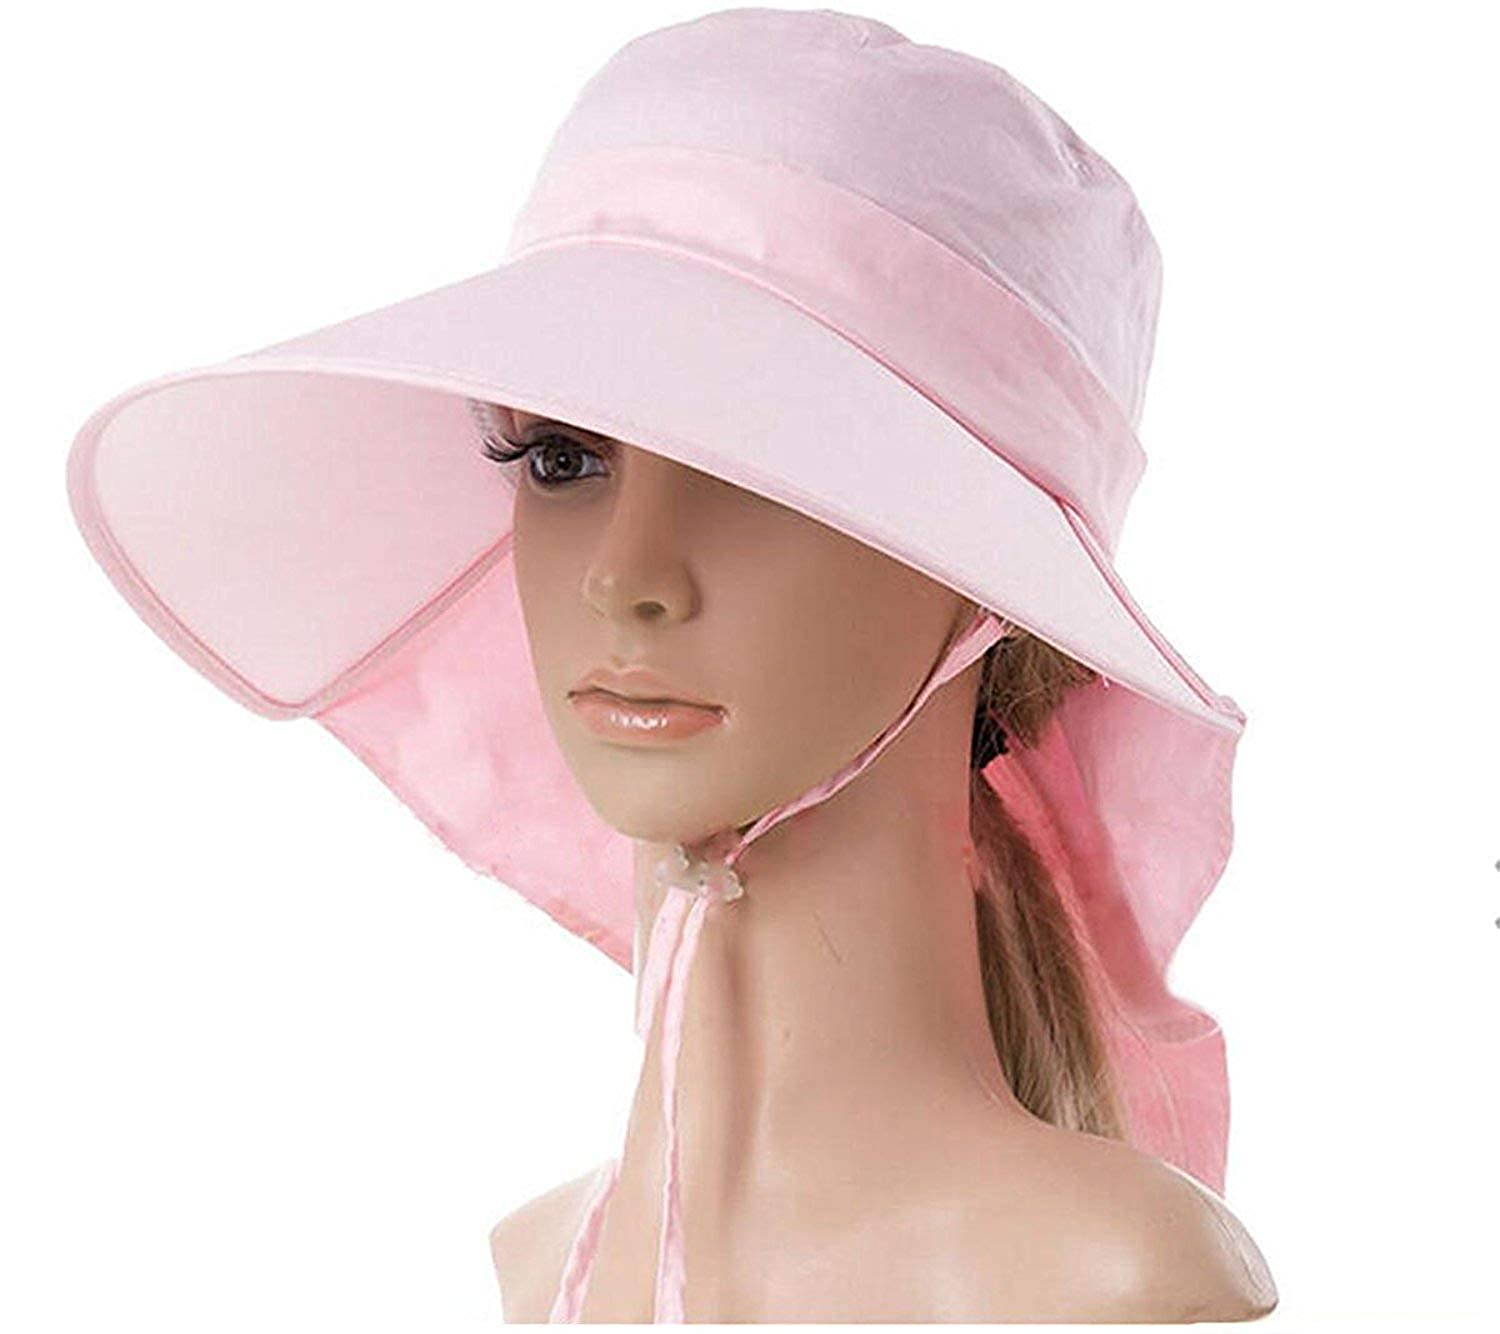 Ls Lady Womens Summer Flap Cover Cap Cotton Anti-UV UPF 50+ Sun Shade Hat  with Bow. Adjustable Hat (One Size 4bb2513af5